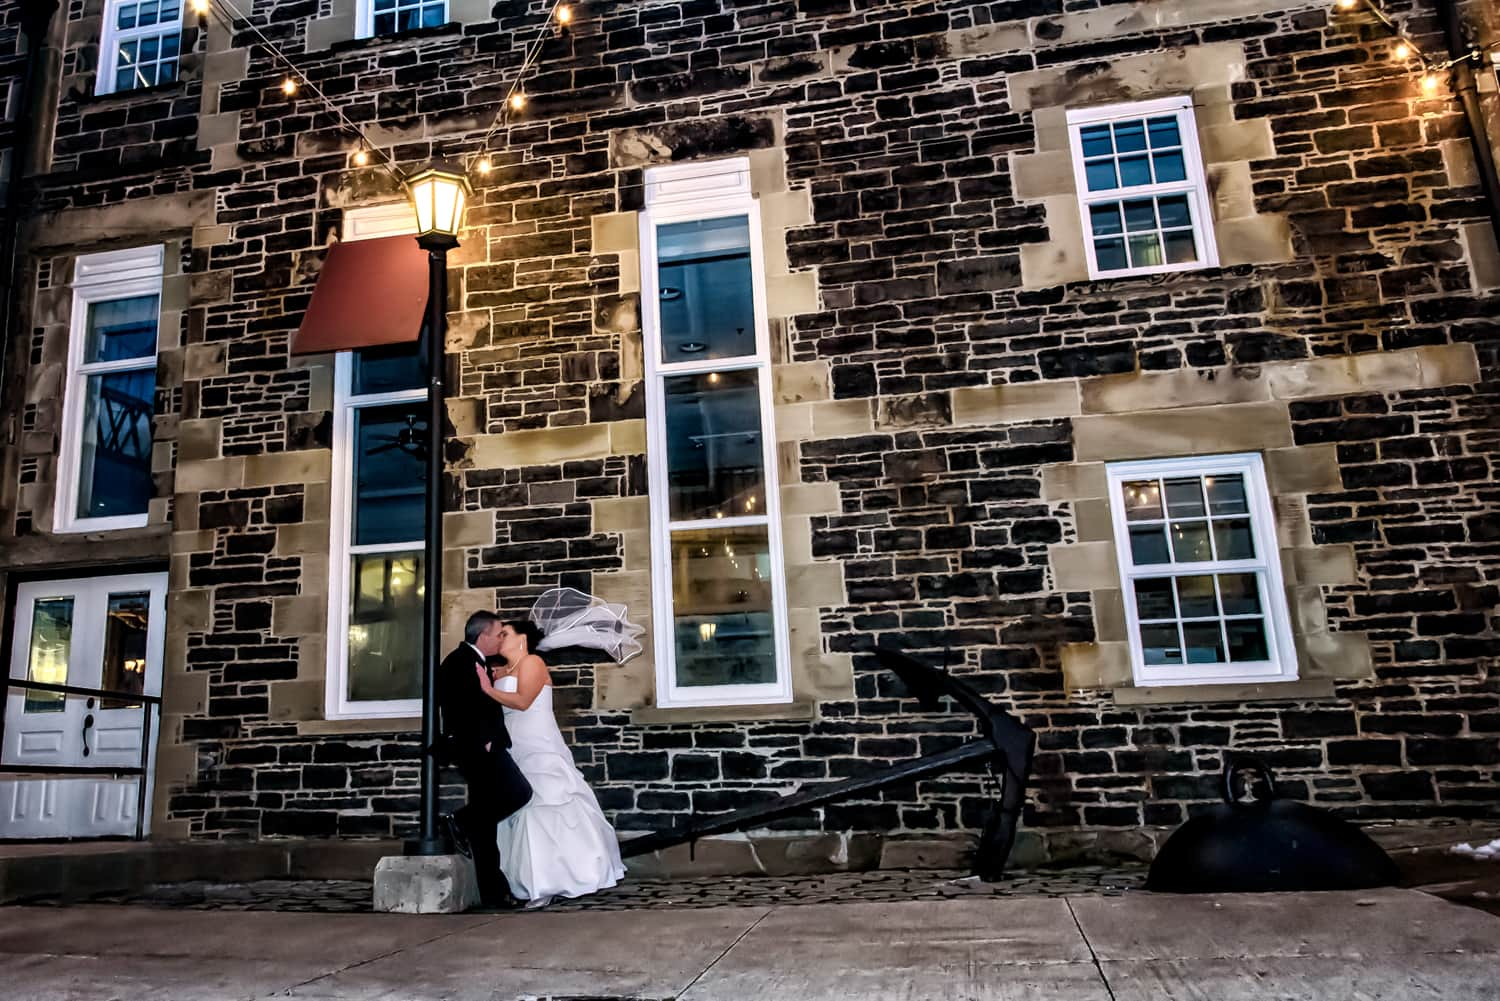 halifax ns wedding photographer, halifax wedding photographers, halifax engagement photographer, engaged, sandra adamson studios, historic properties, bride, groom